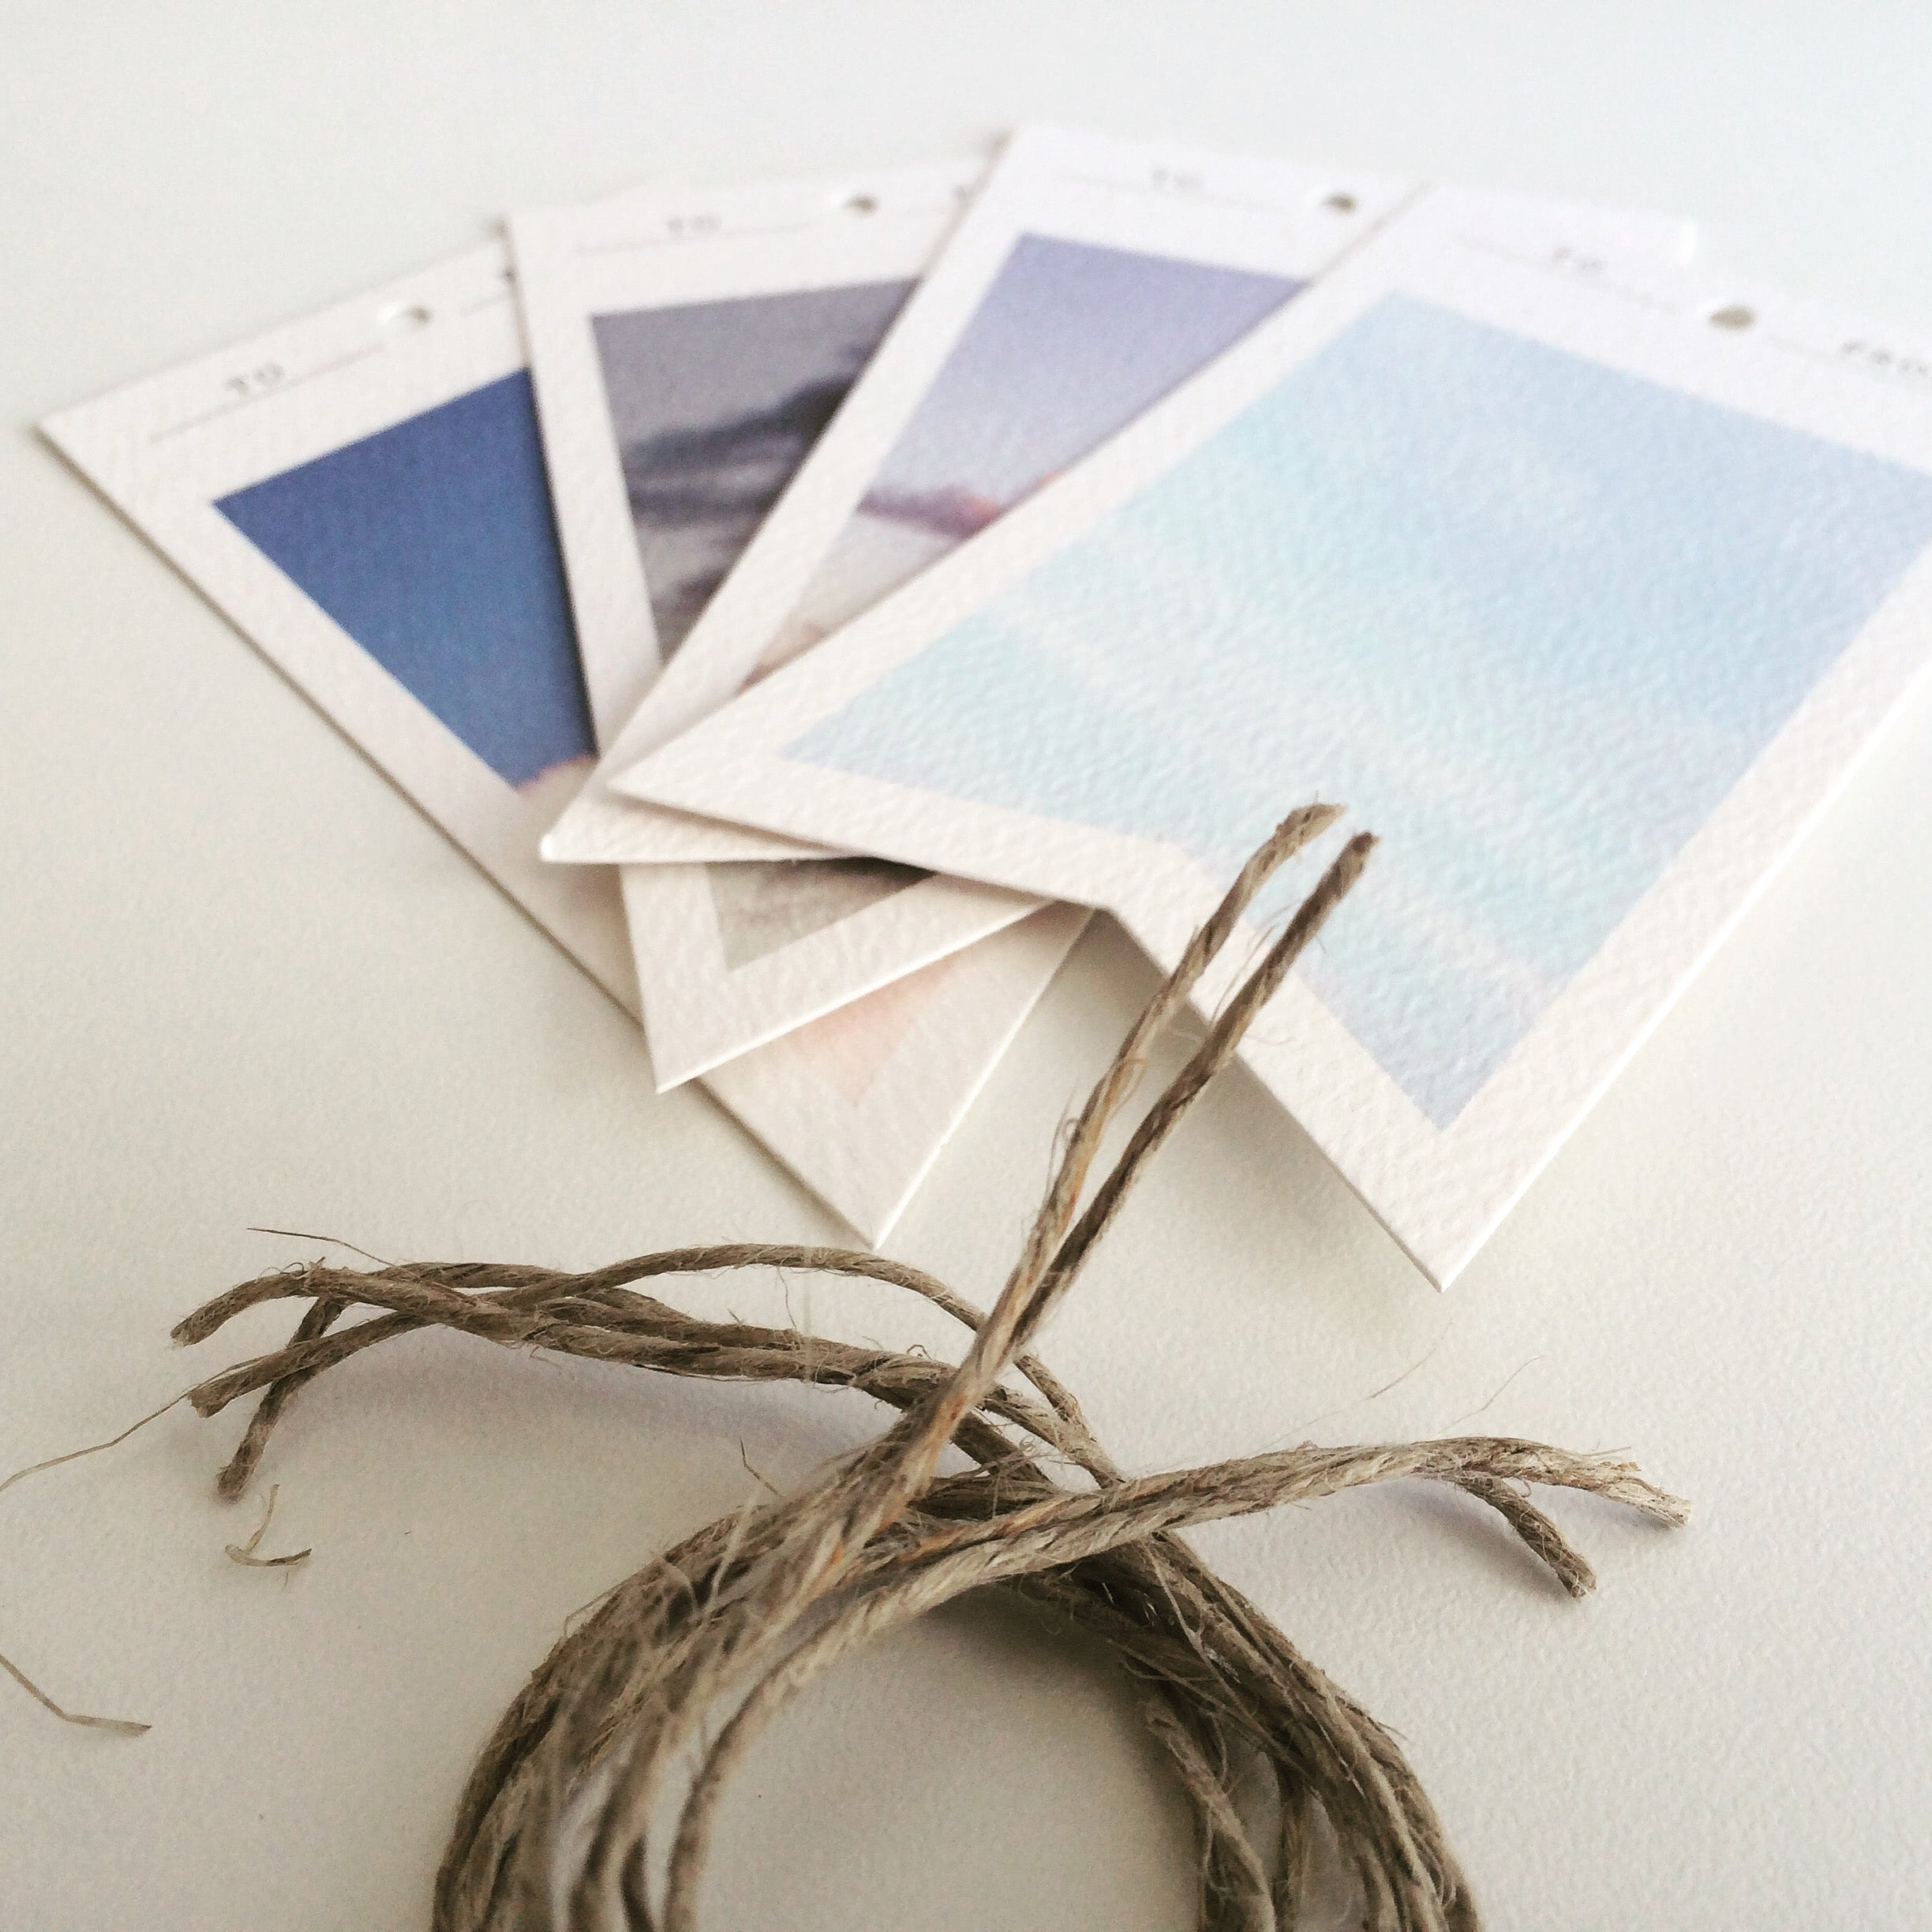 Gift tags and twine